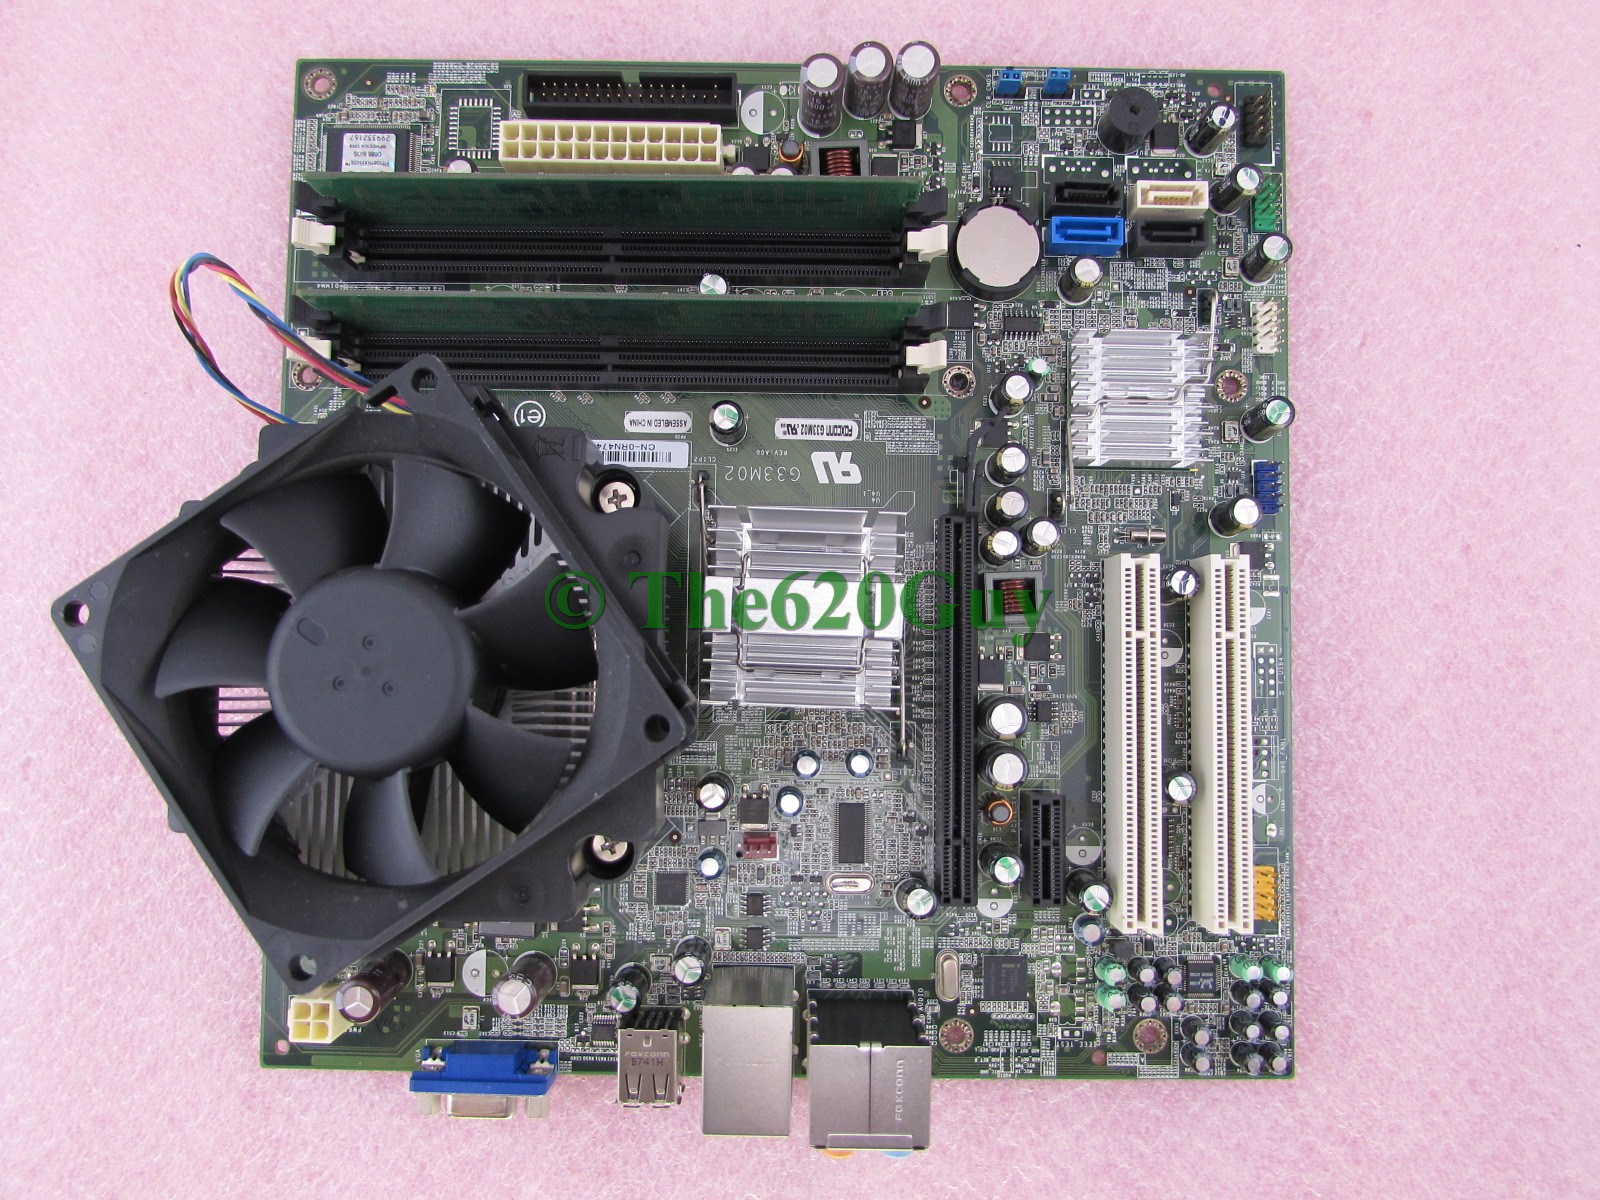 dell vostro 400 motherboard g33m02 rn474 intel c2d e4500 dell inspiron 530s instruction manual dell inspiron 530 manual uk